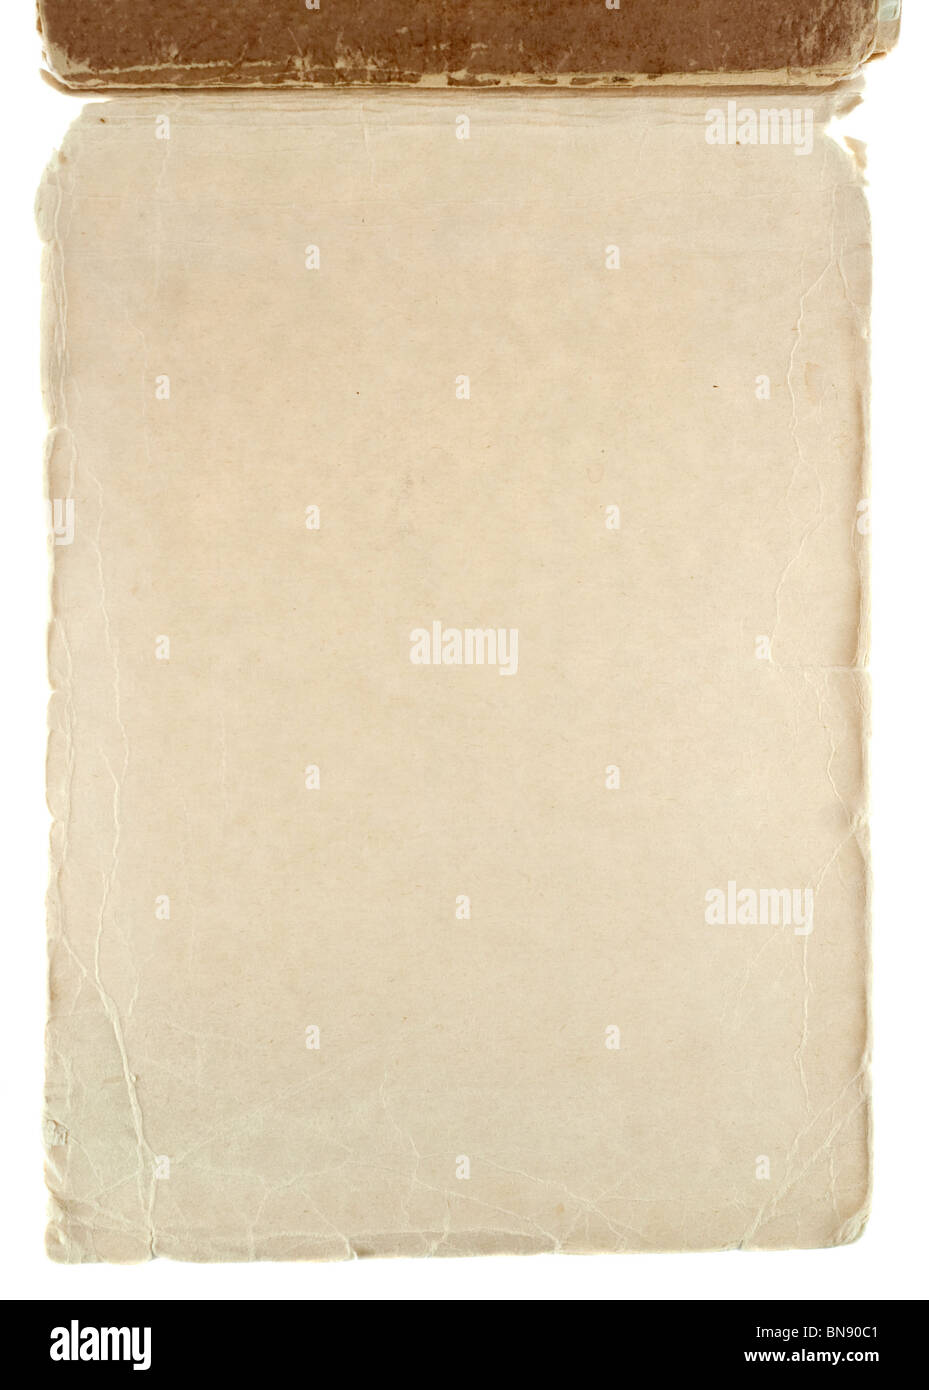 Old grungy notepad isolated on white - Stock Image